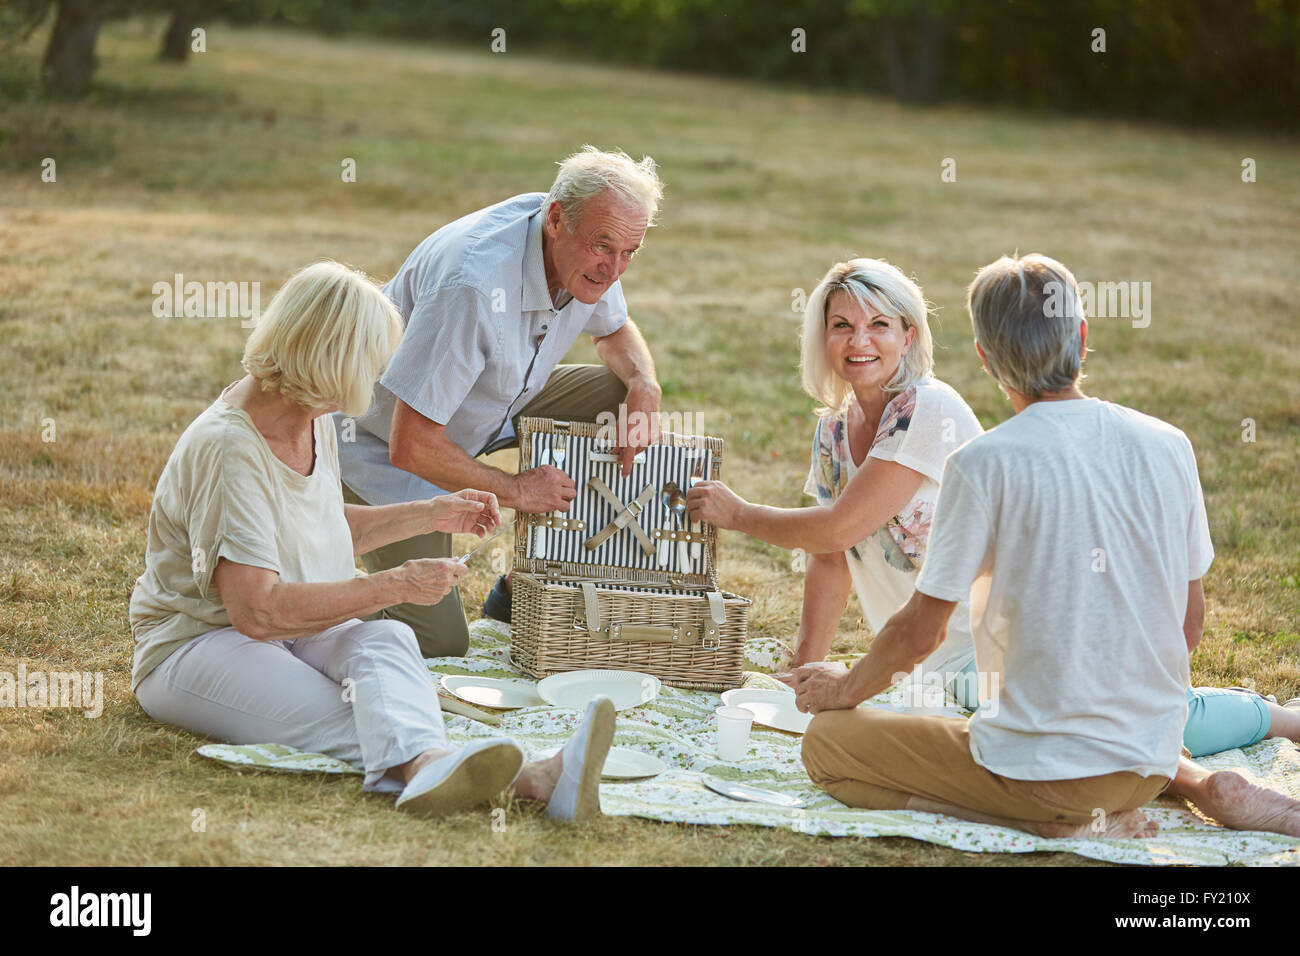 Friends having a picnic together in the park in summer in the nature - Stock Image